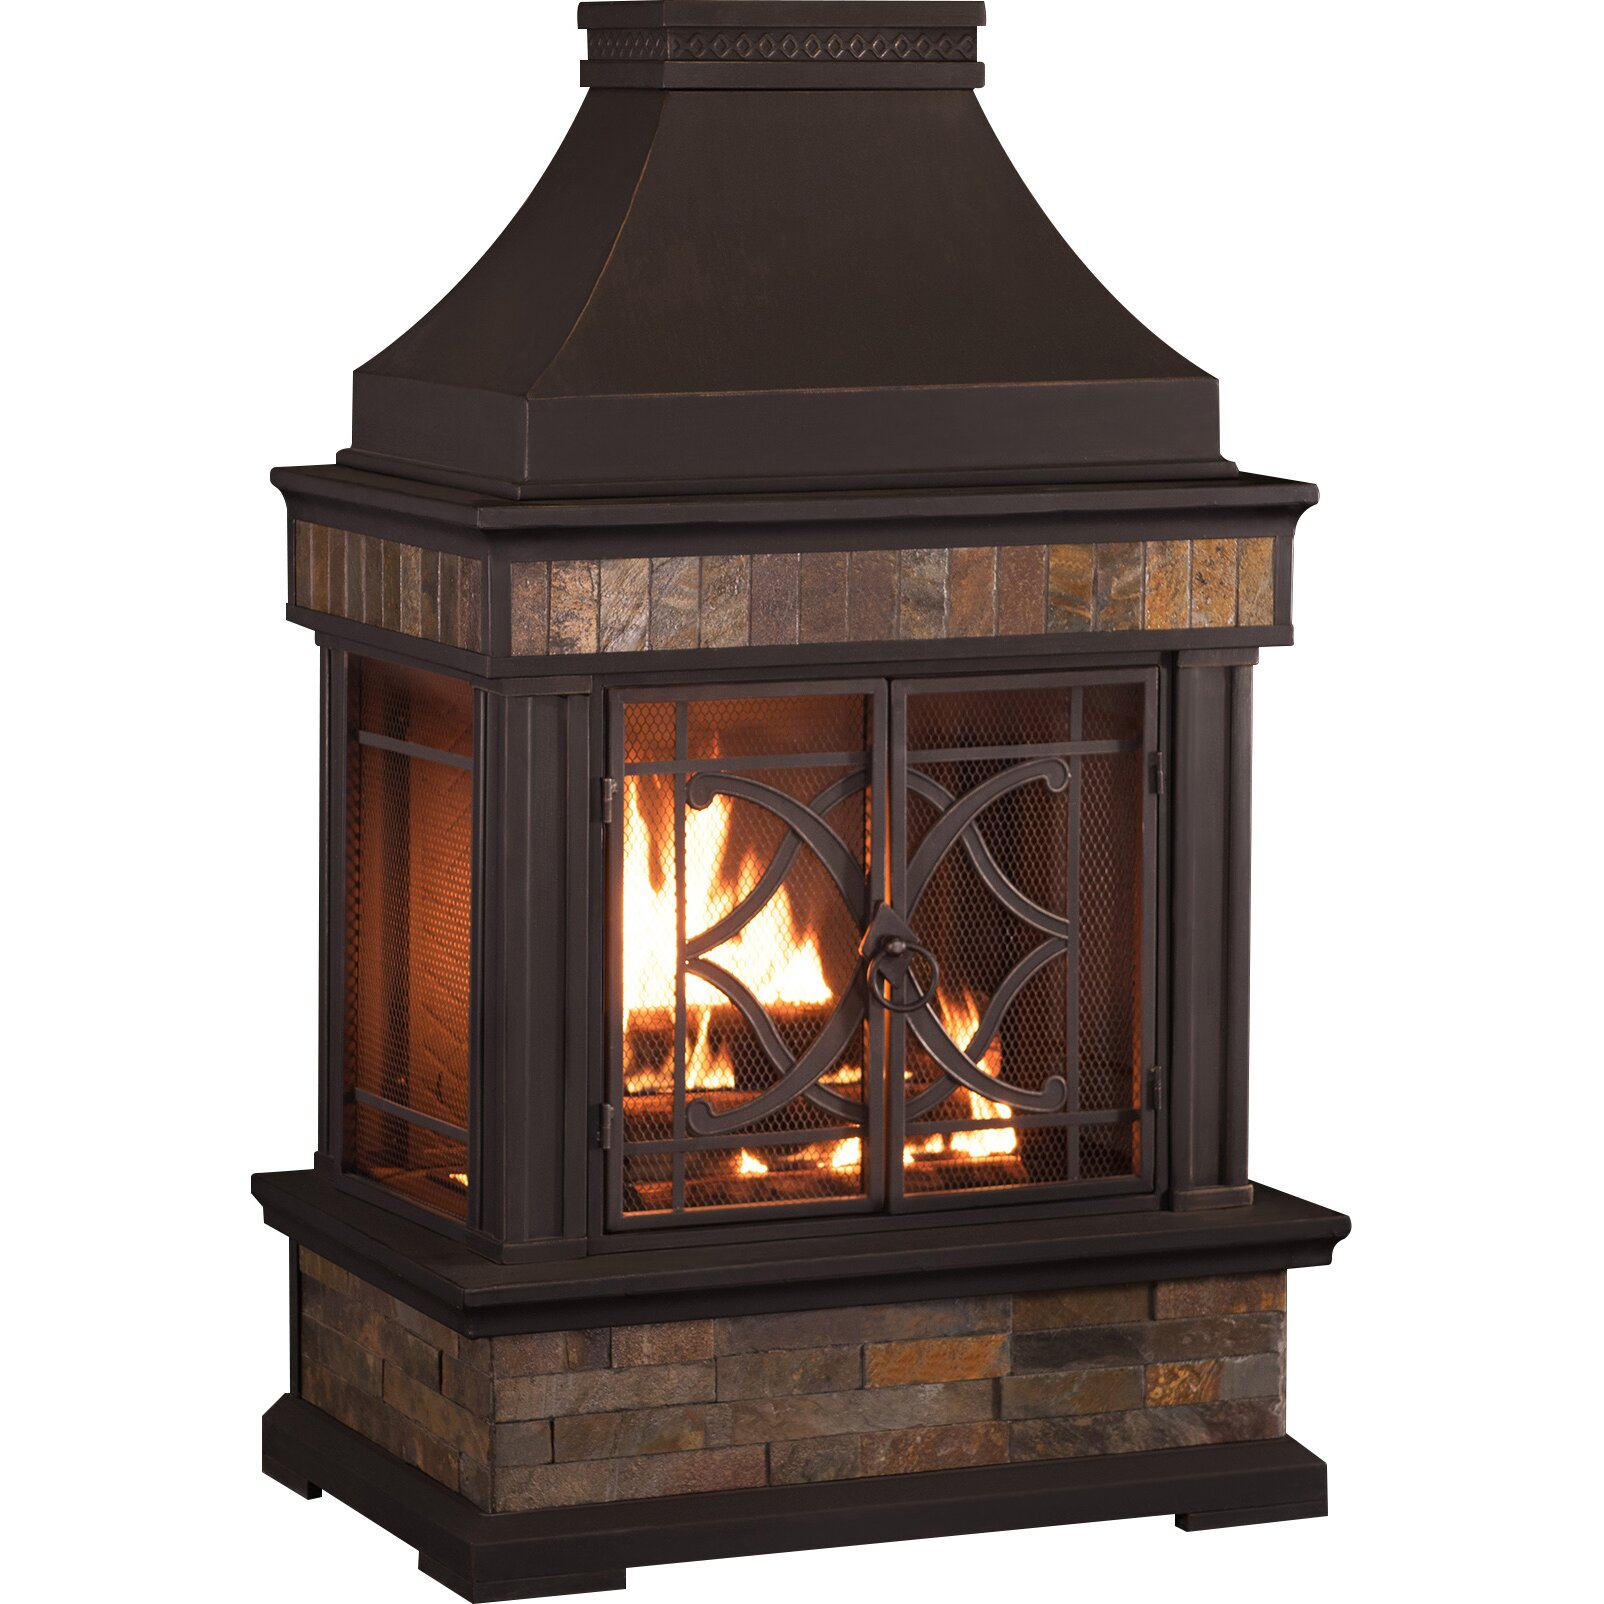 Sunjoy Heirloom Steel Wood Burning Outdoor Outdoor Fireplace Reviews Wayfair